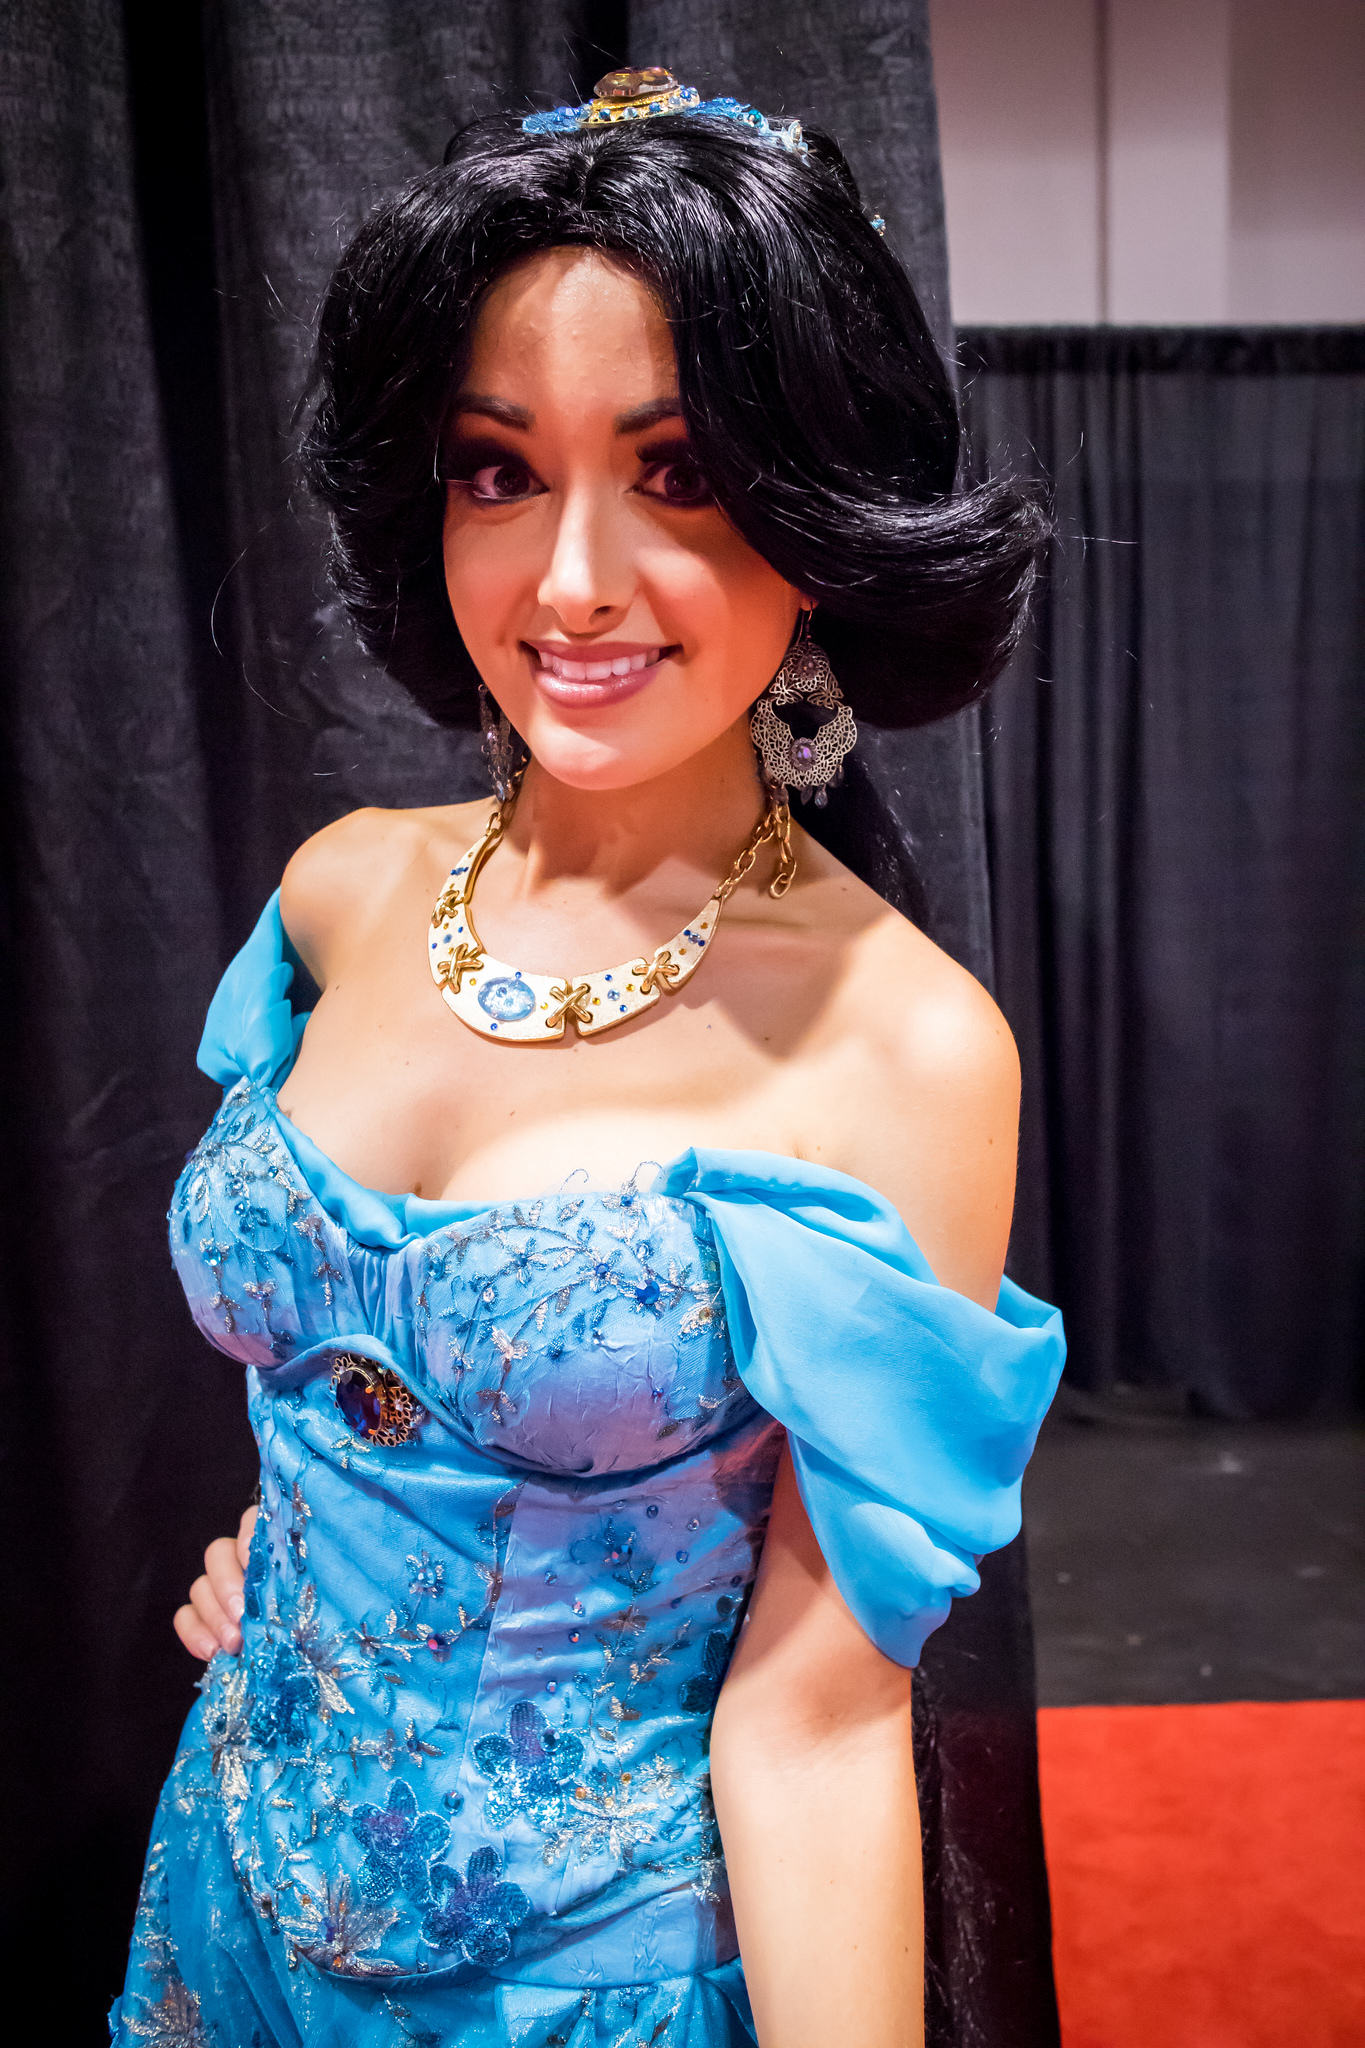 Princess Jasmine Halloween Costumes For Girls